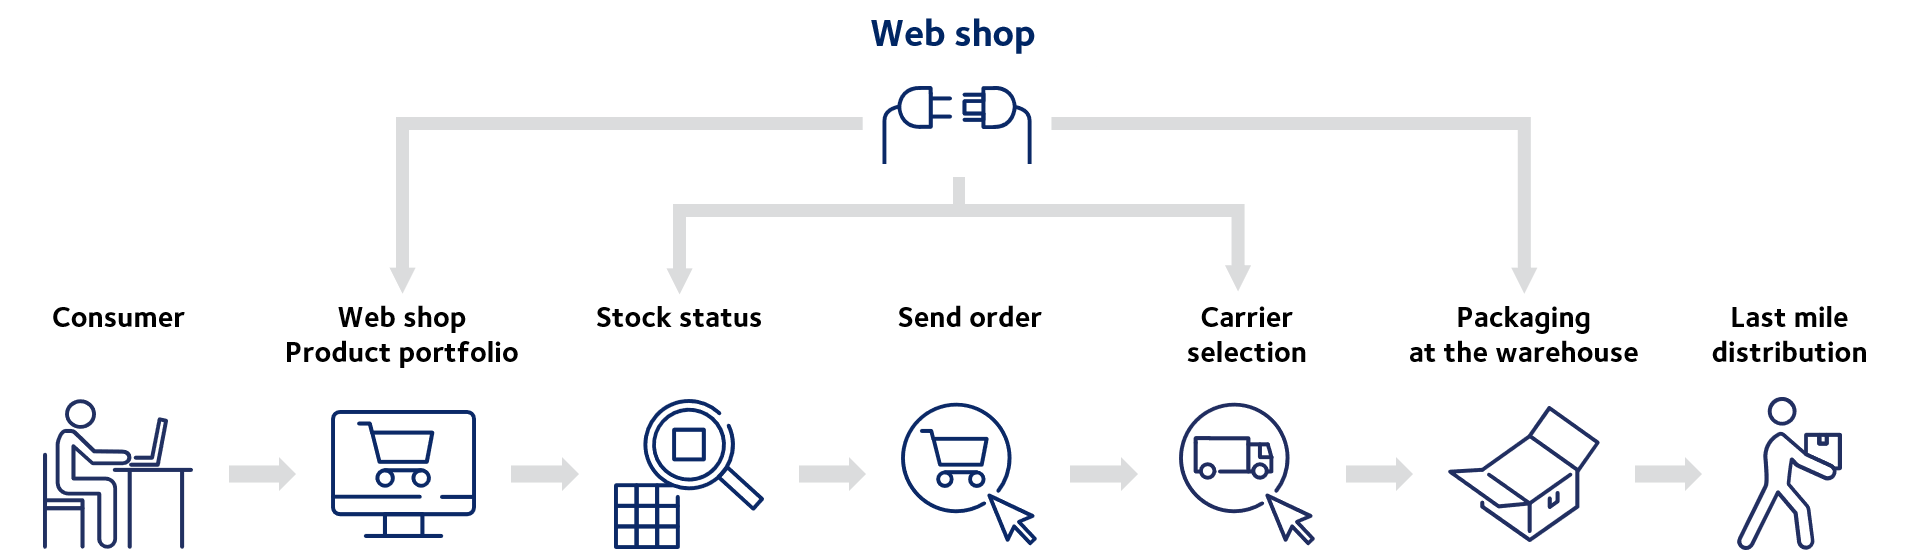 web shop ecommerce solutions